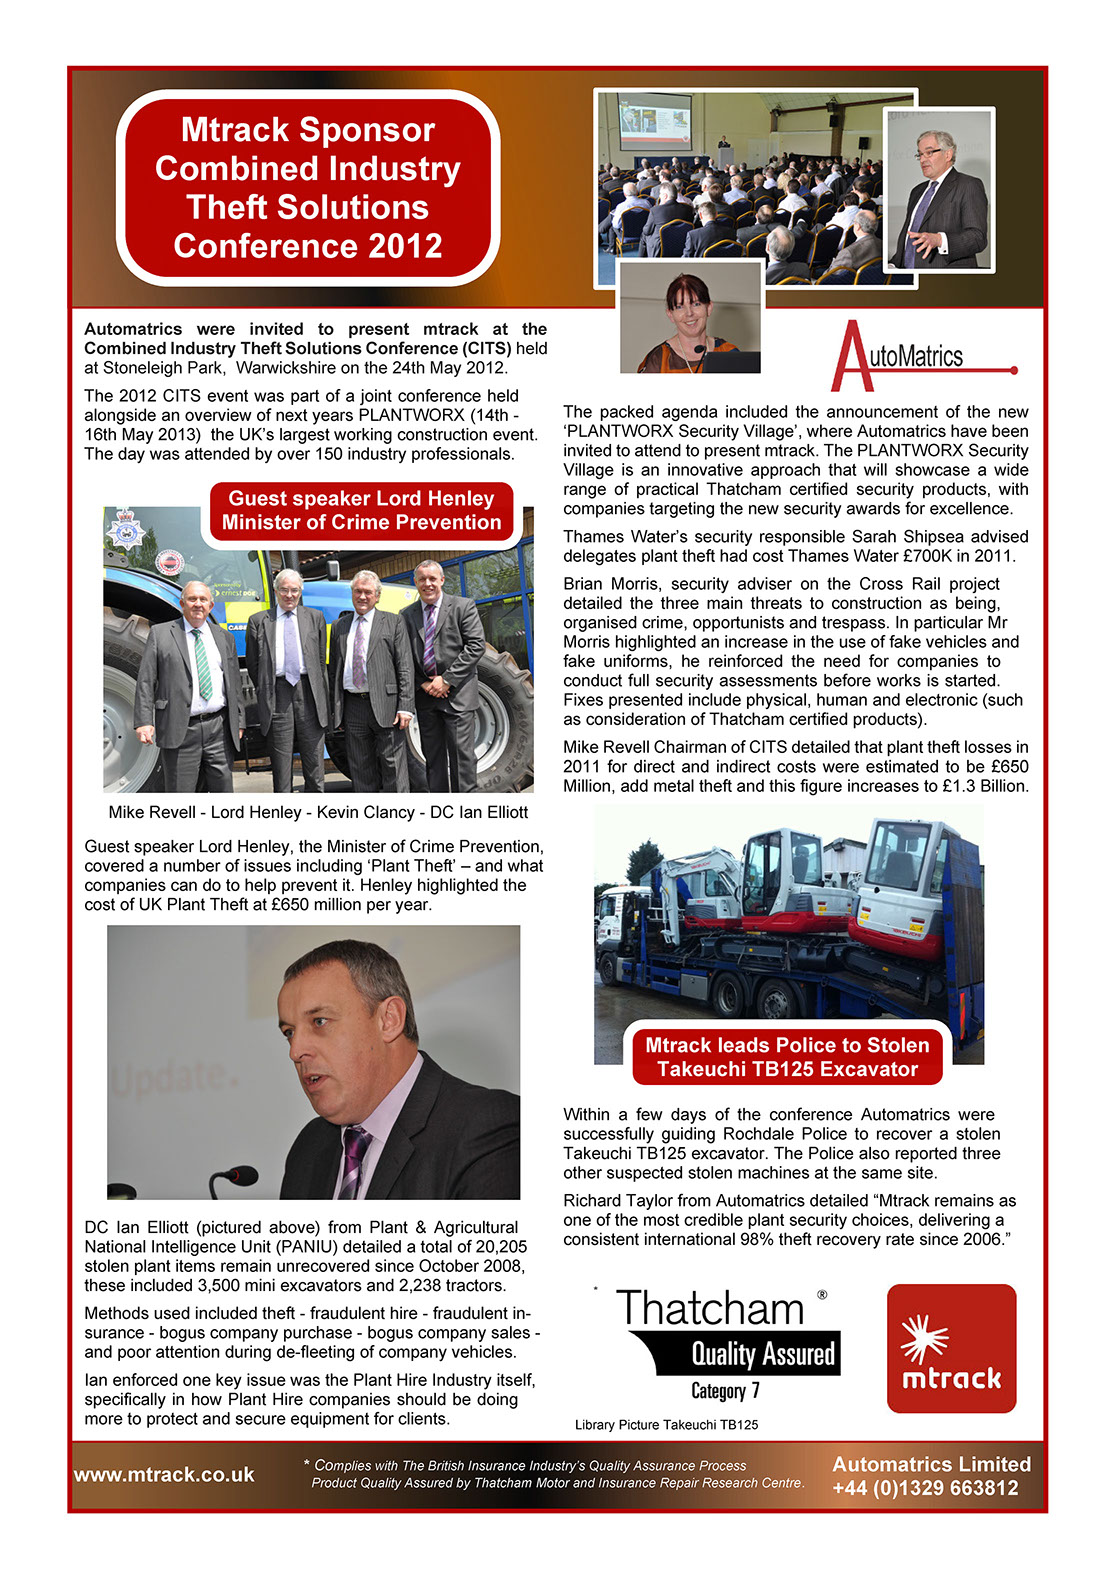 CITS Conbiined Industry Theft Solutions 2012 Conference Automatrics Newsletter